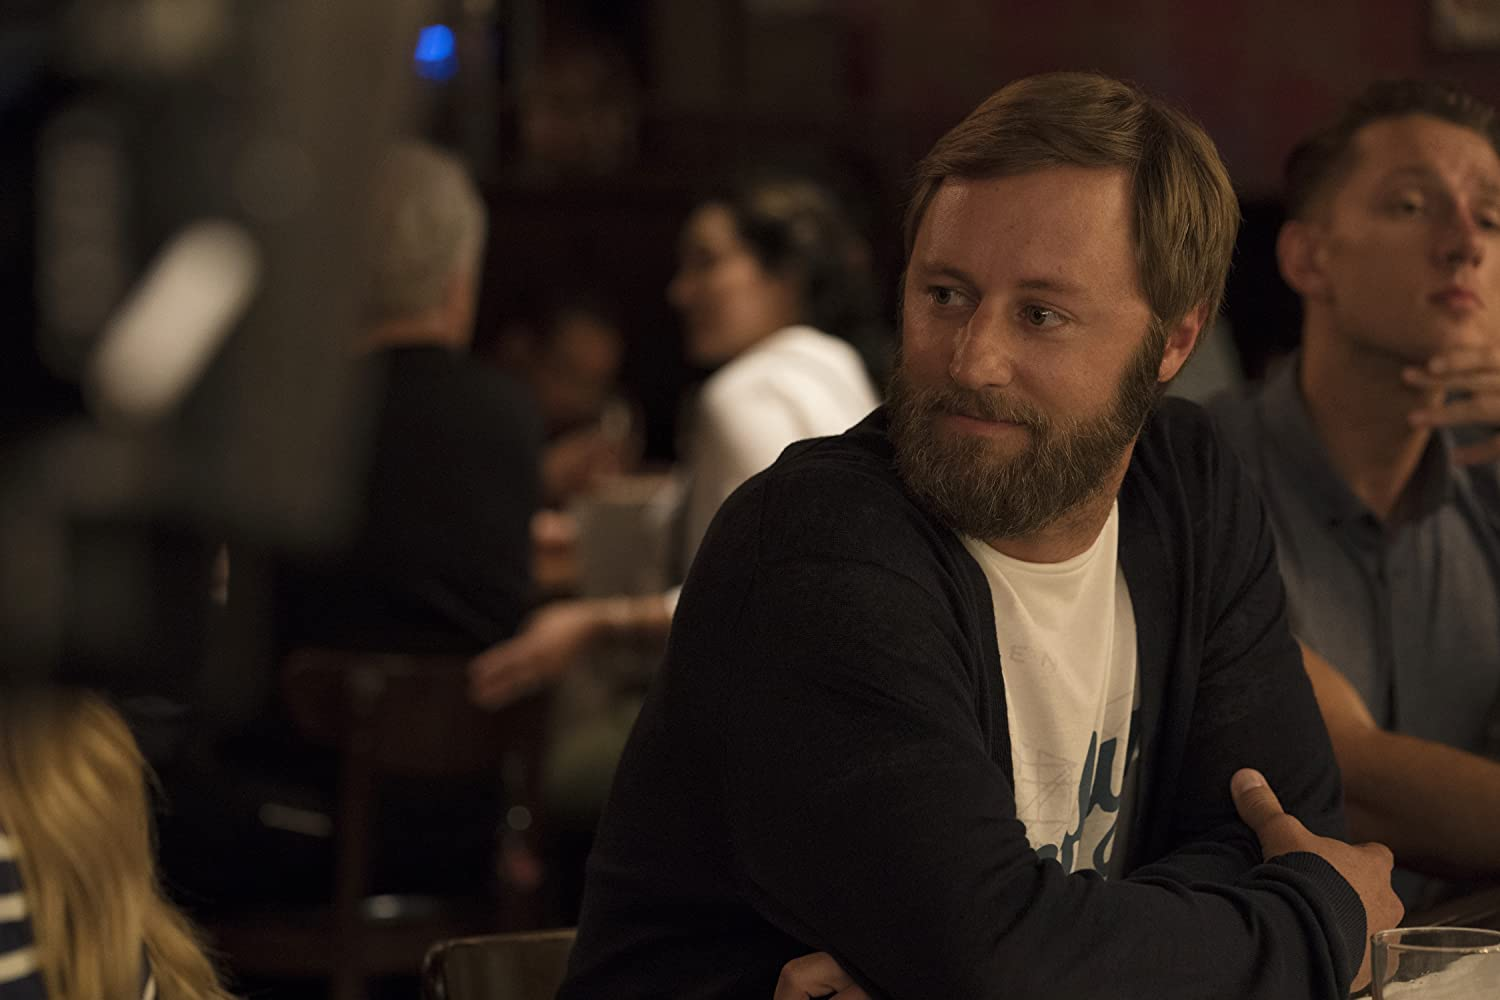 Rory Scovel in I Feel Pretty (2018)